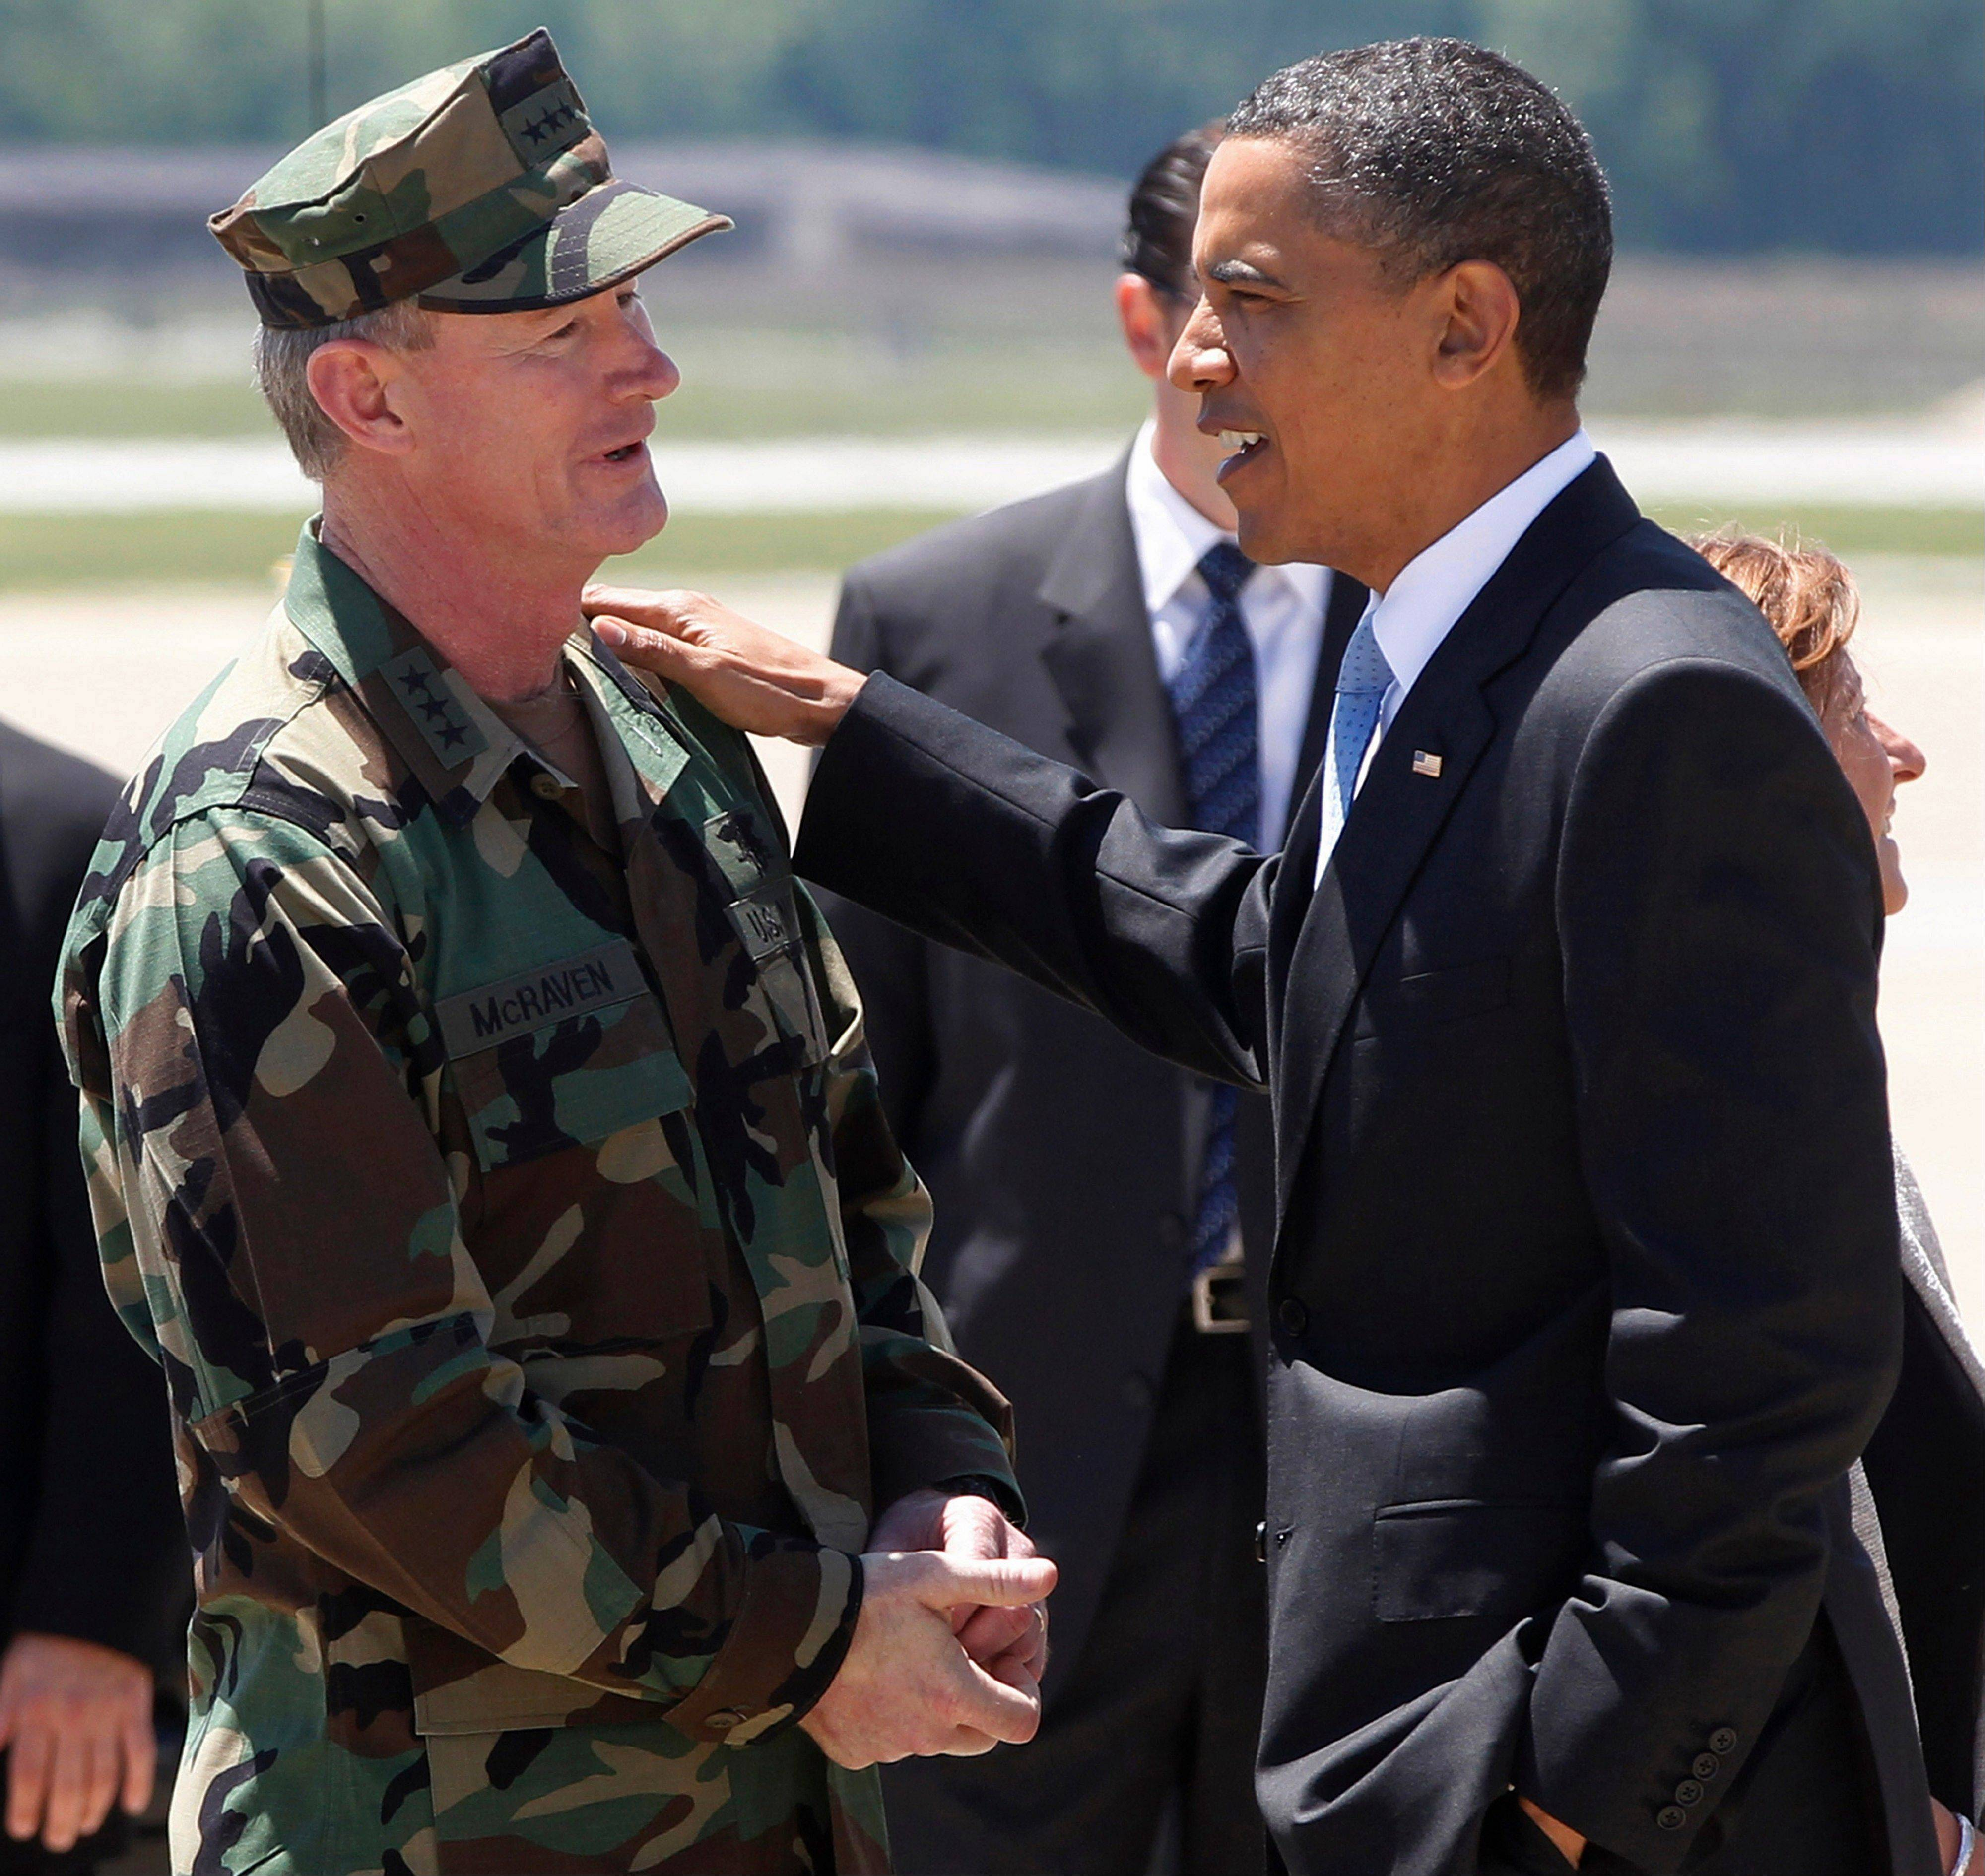 In this May 6, 2011 photo President Barack Obama talks with U.S. Navy Vice Admiral William H. McRaven, commander of Joint Special Operations Command (JSOC), at Campbell Army Airfield in Fort Campbell, Ky., just days after McRaven led operational control of Navy SEAL Team Six's successful mission to get Osama bin Laden.